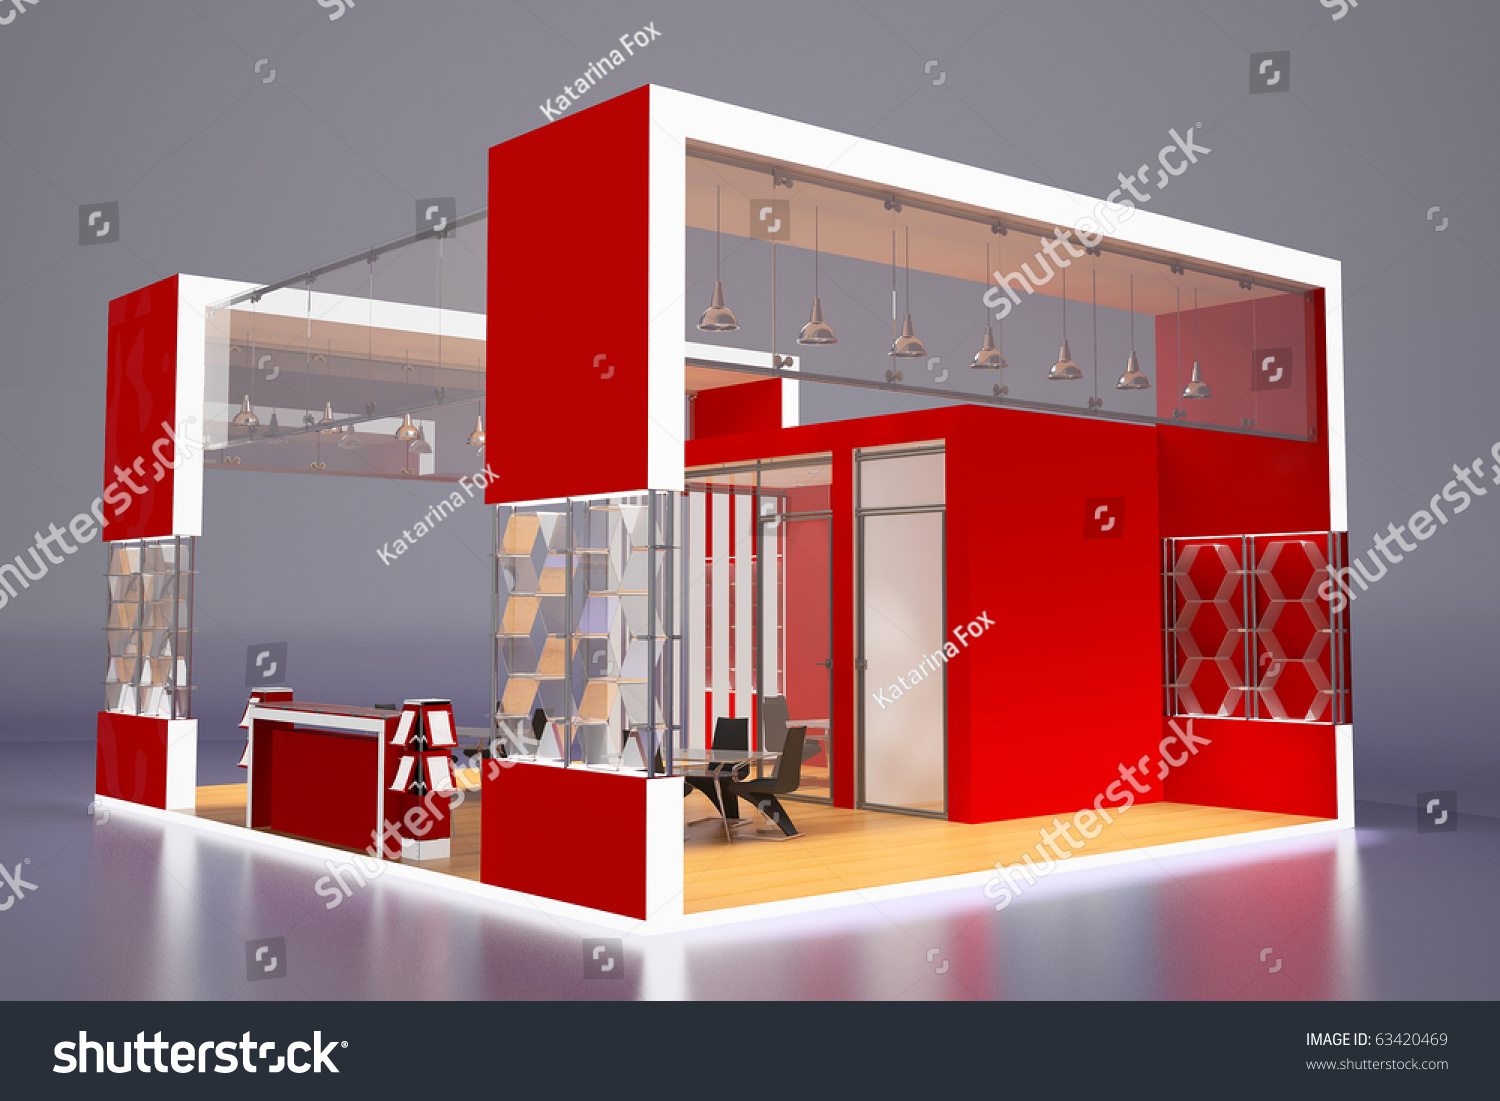 Modern Exhibition Stand : D render modern red exhibition stand stock illustration